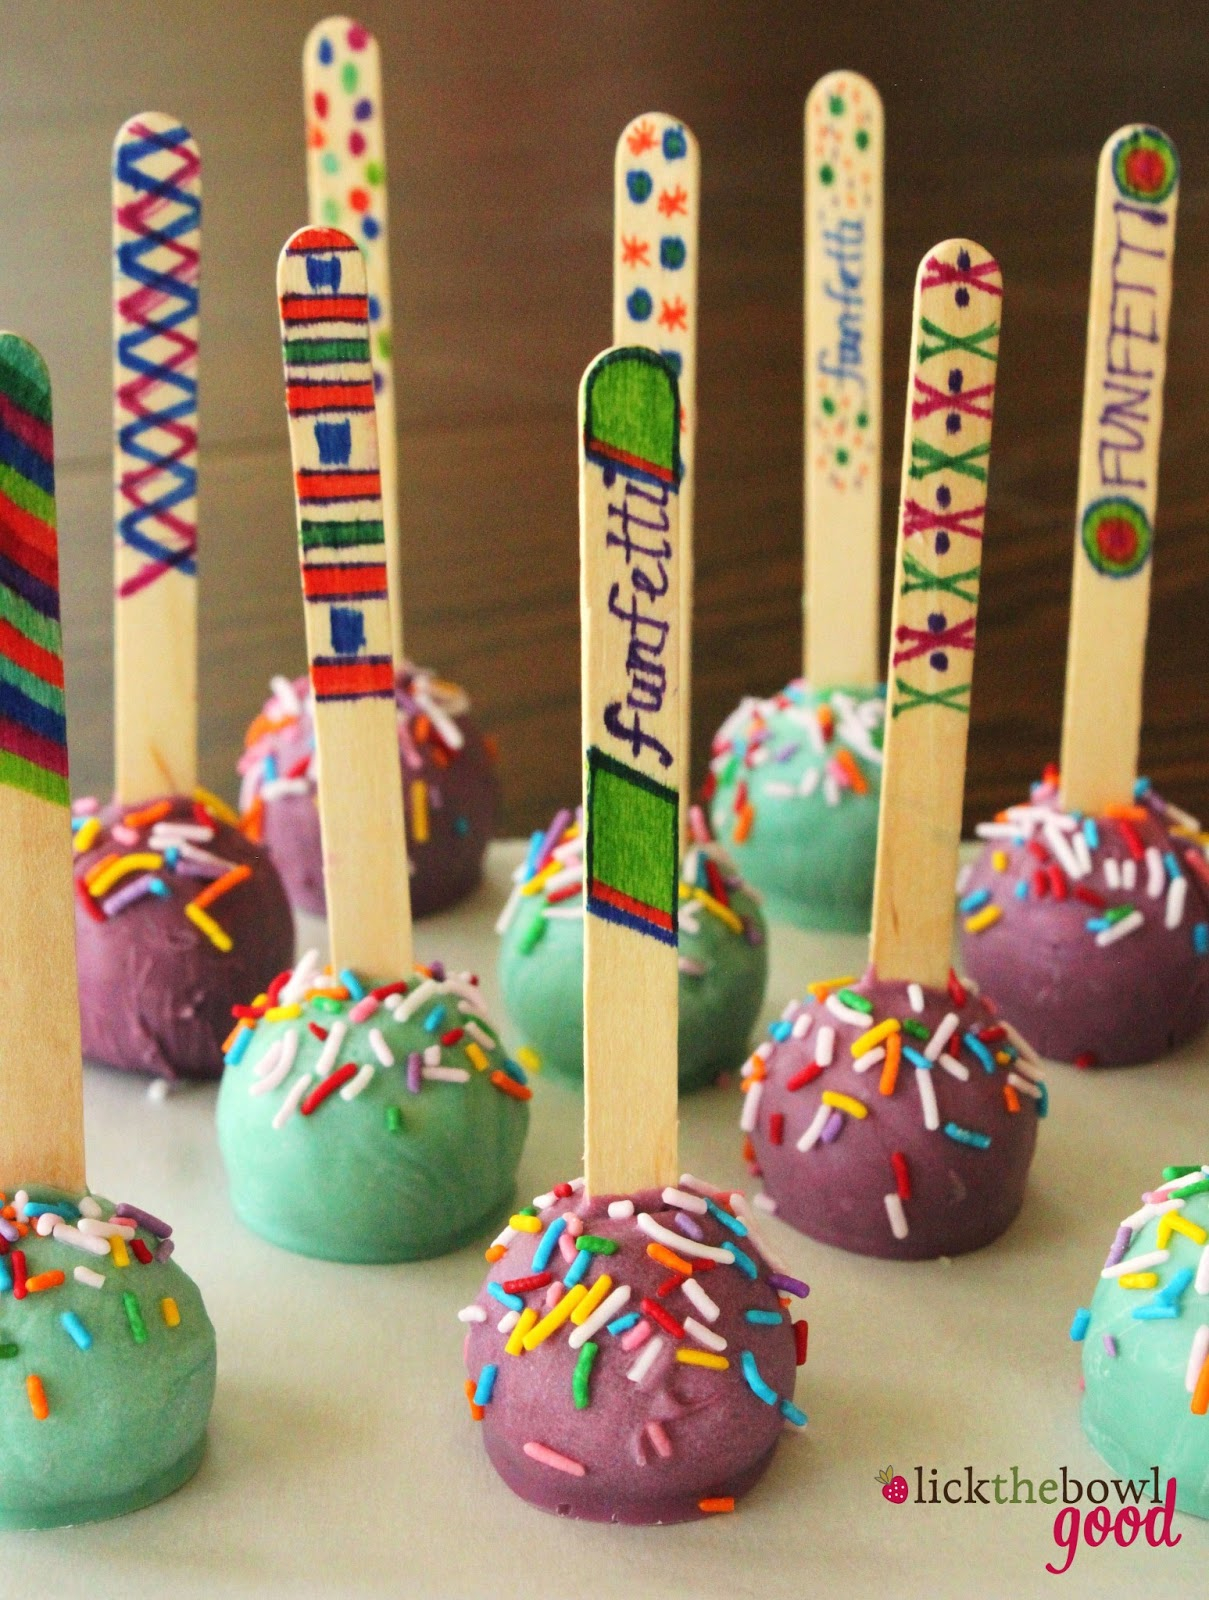 Birthday Cake Pops Lick The Bowl Good My Birthday Cakes And No Bake Cake Pops